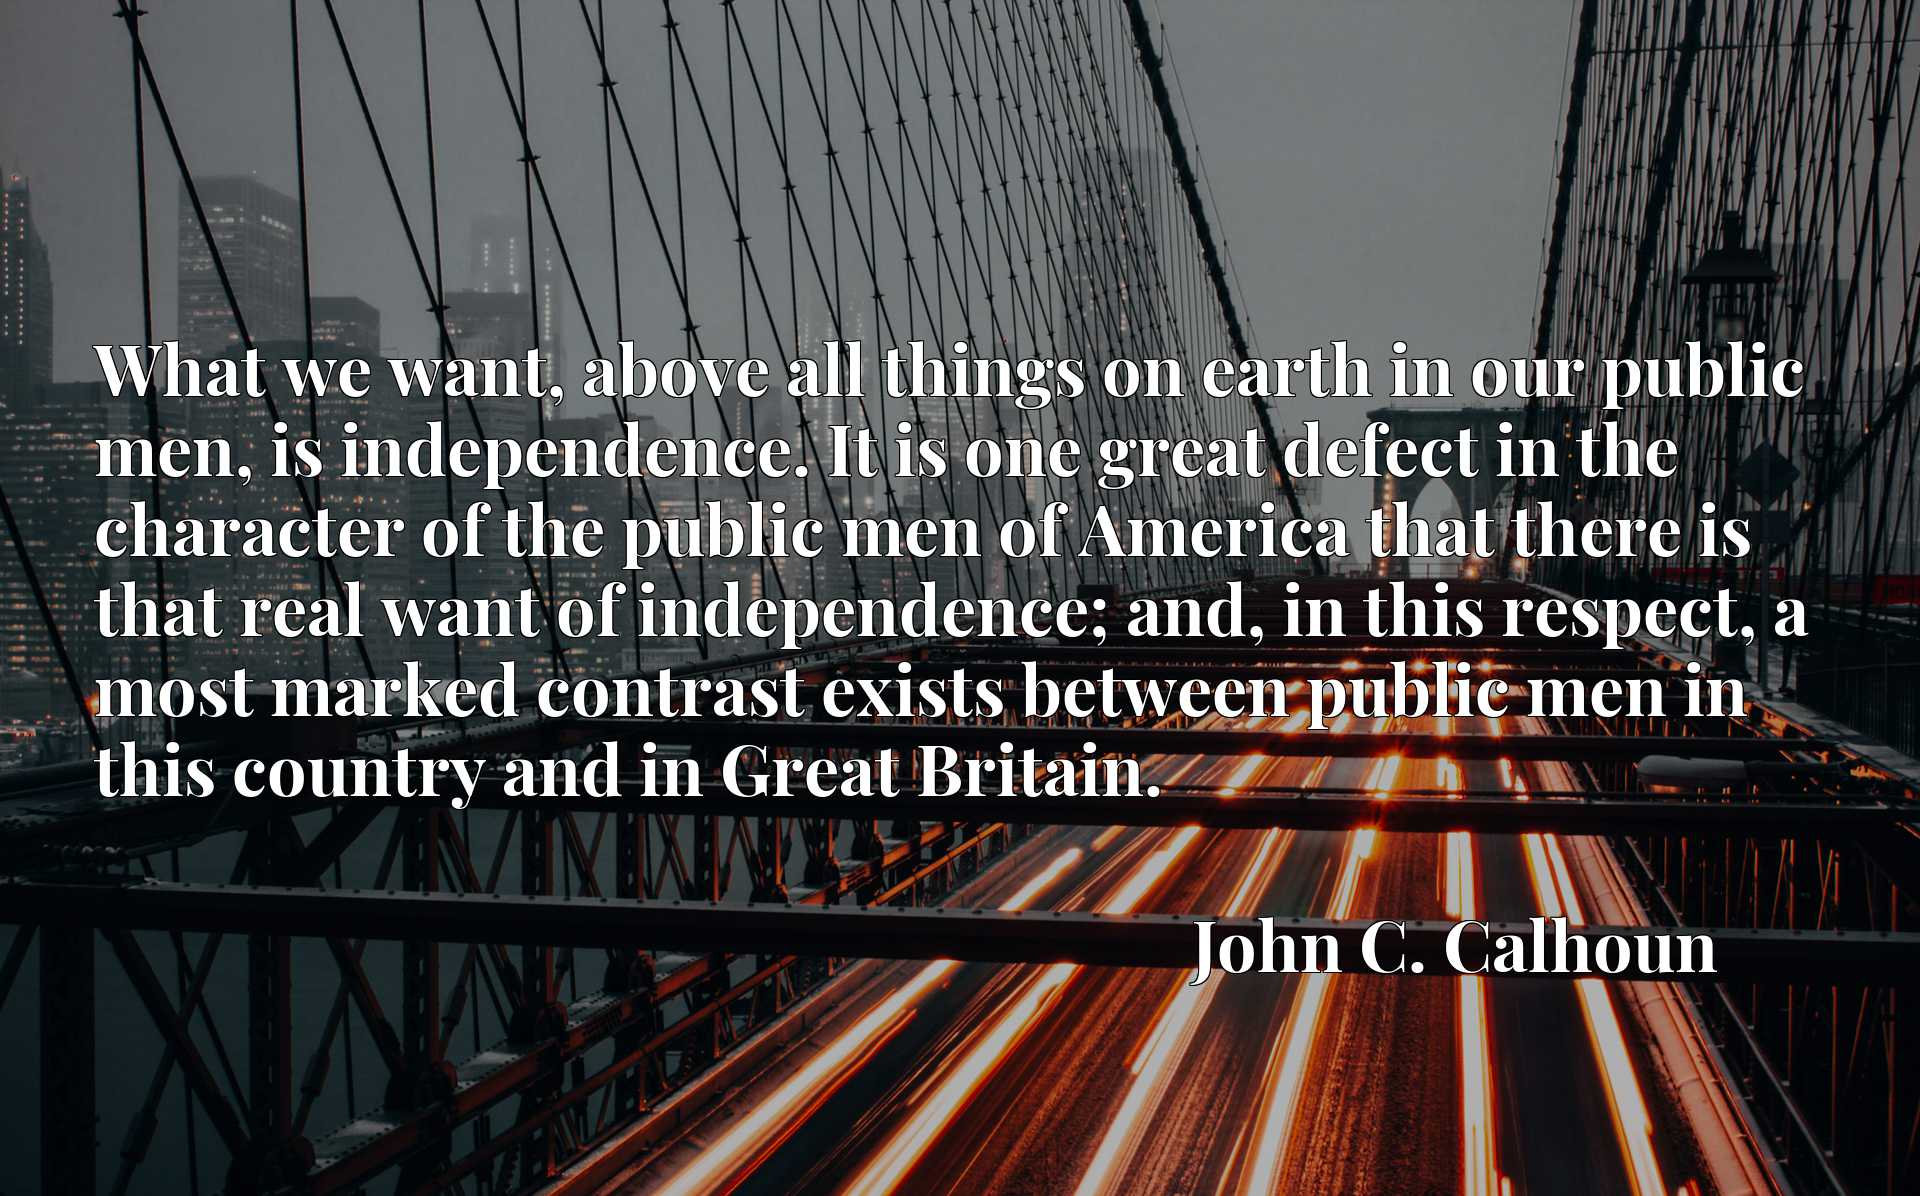 What we want, above all things on earth in our public men, is independence. It is one great defect in the character of the public men of America that there is that real want of independence; and, in this respect, a most marked contrast exists between public men in this country and in Great Britain.